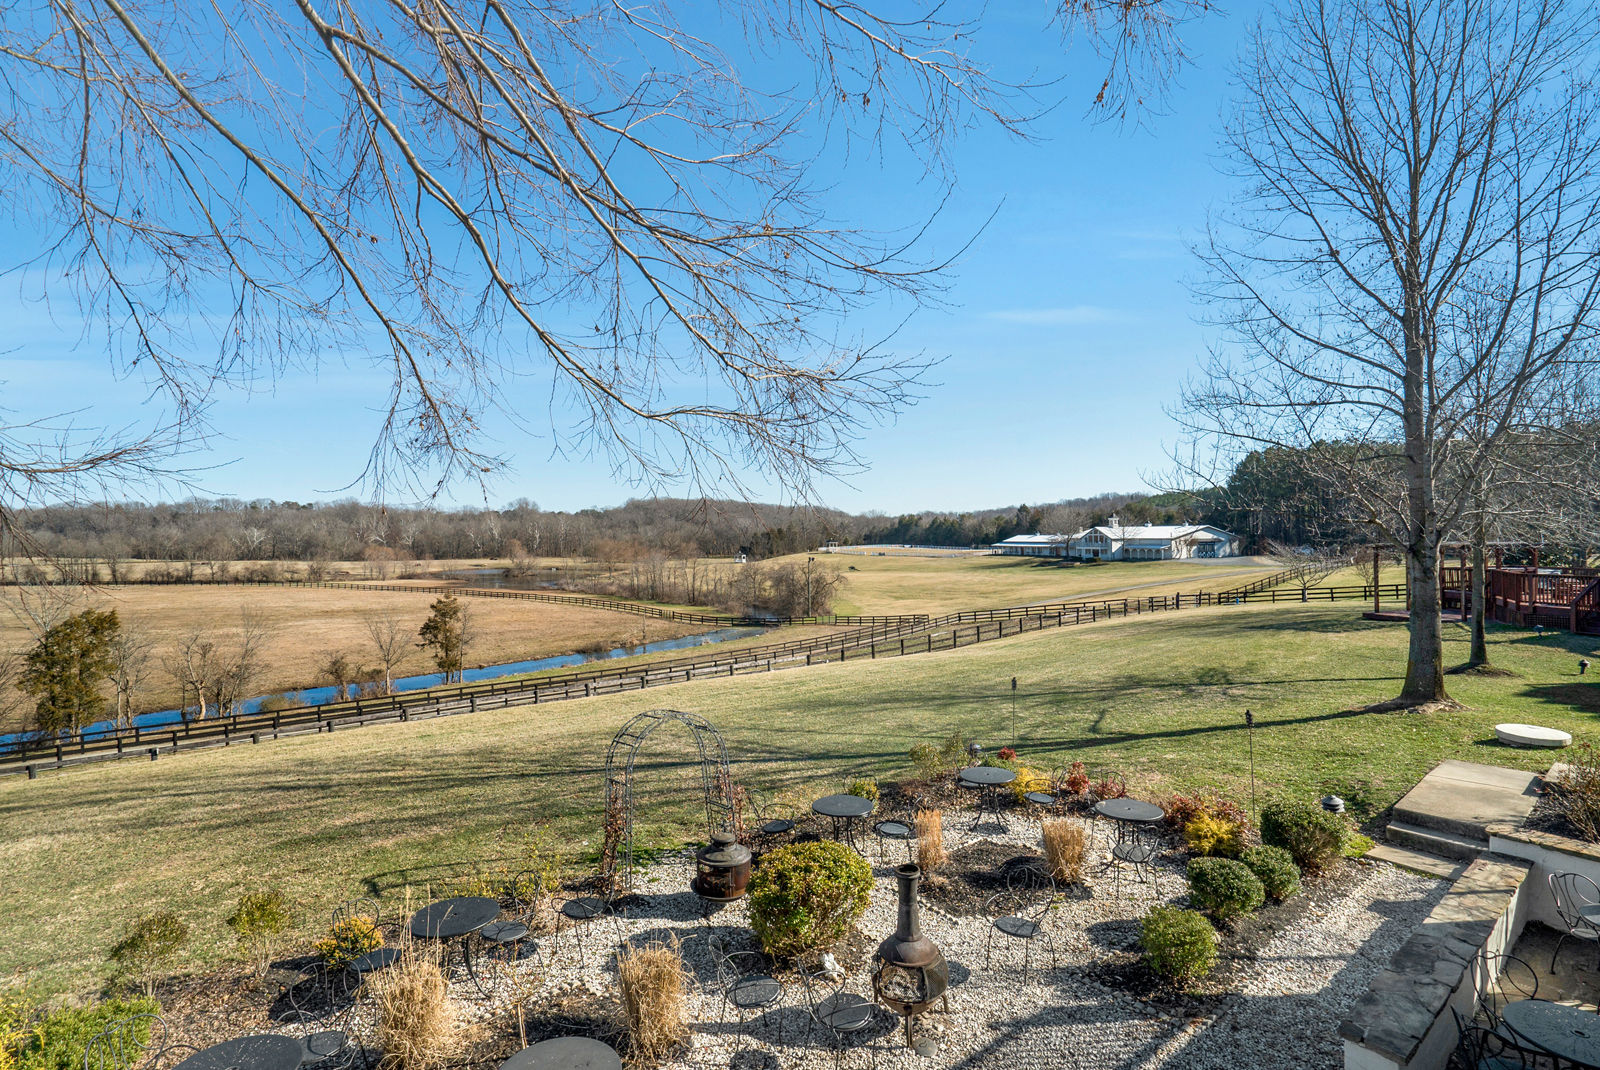 The Inn at Kelly's Ford is adjacent to the Rappahannock River. (Courtesy Auction Markets LLC)